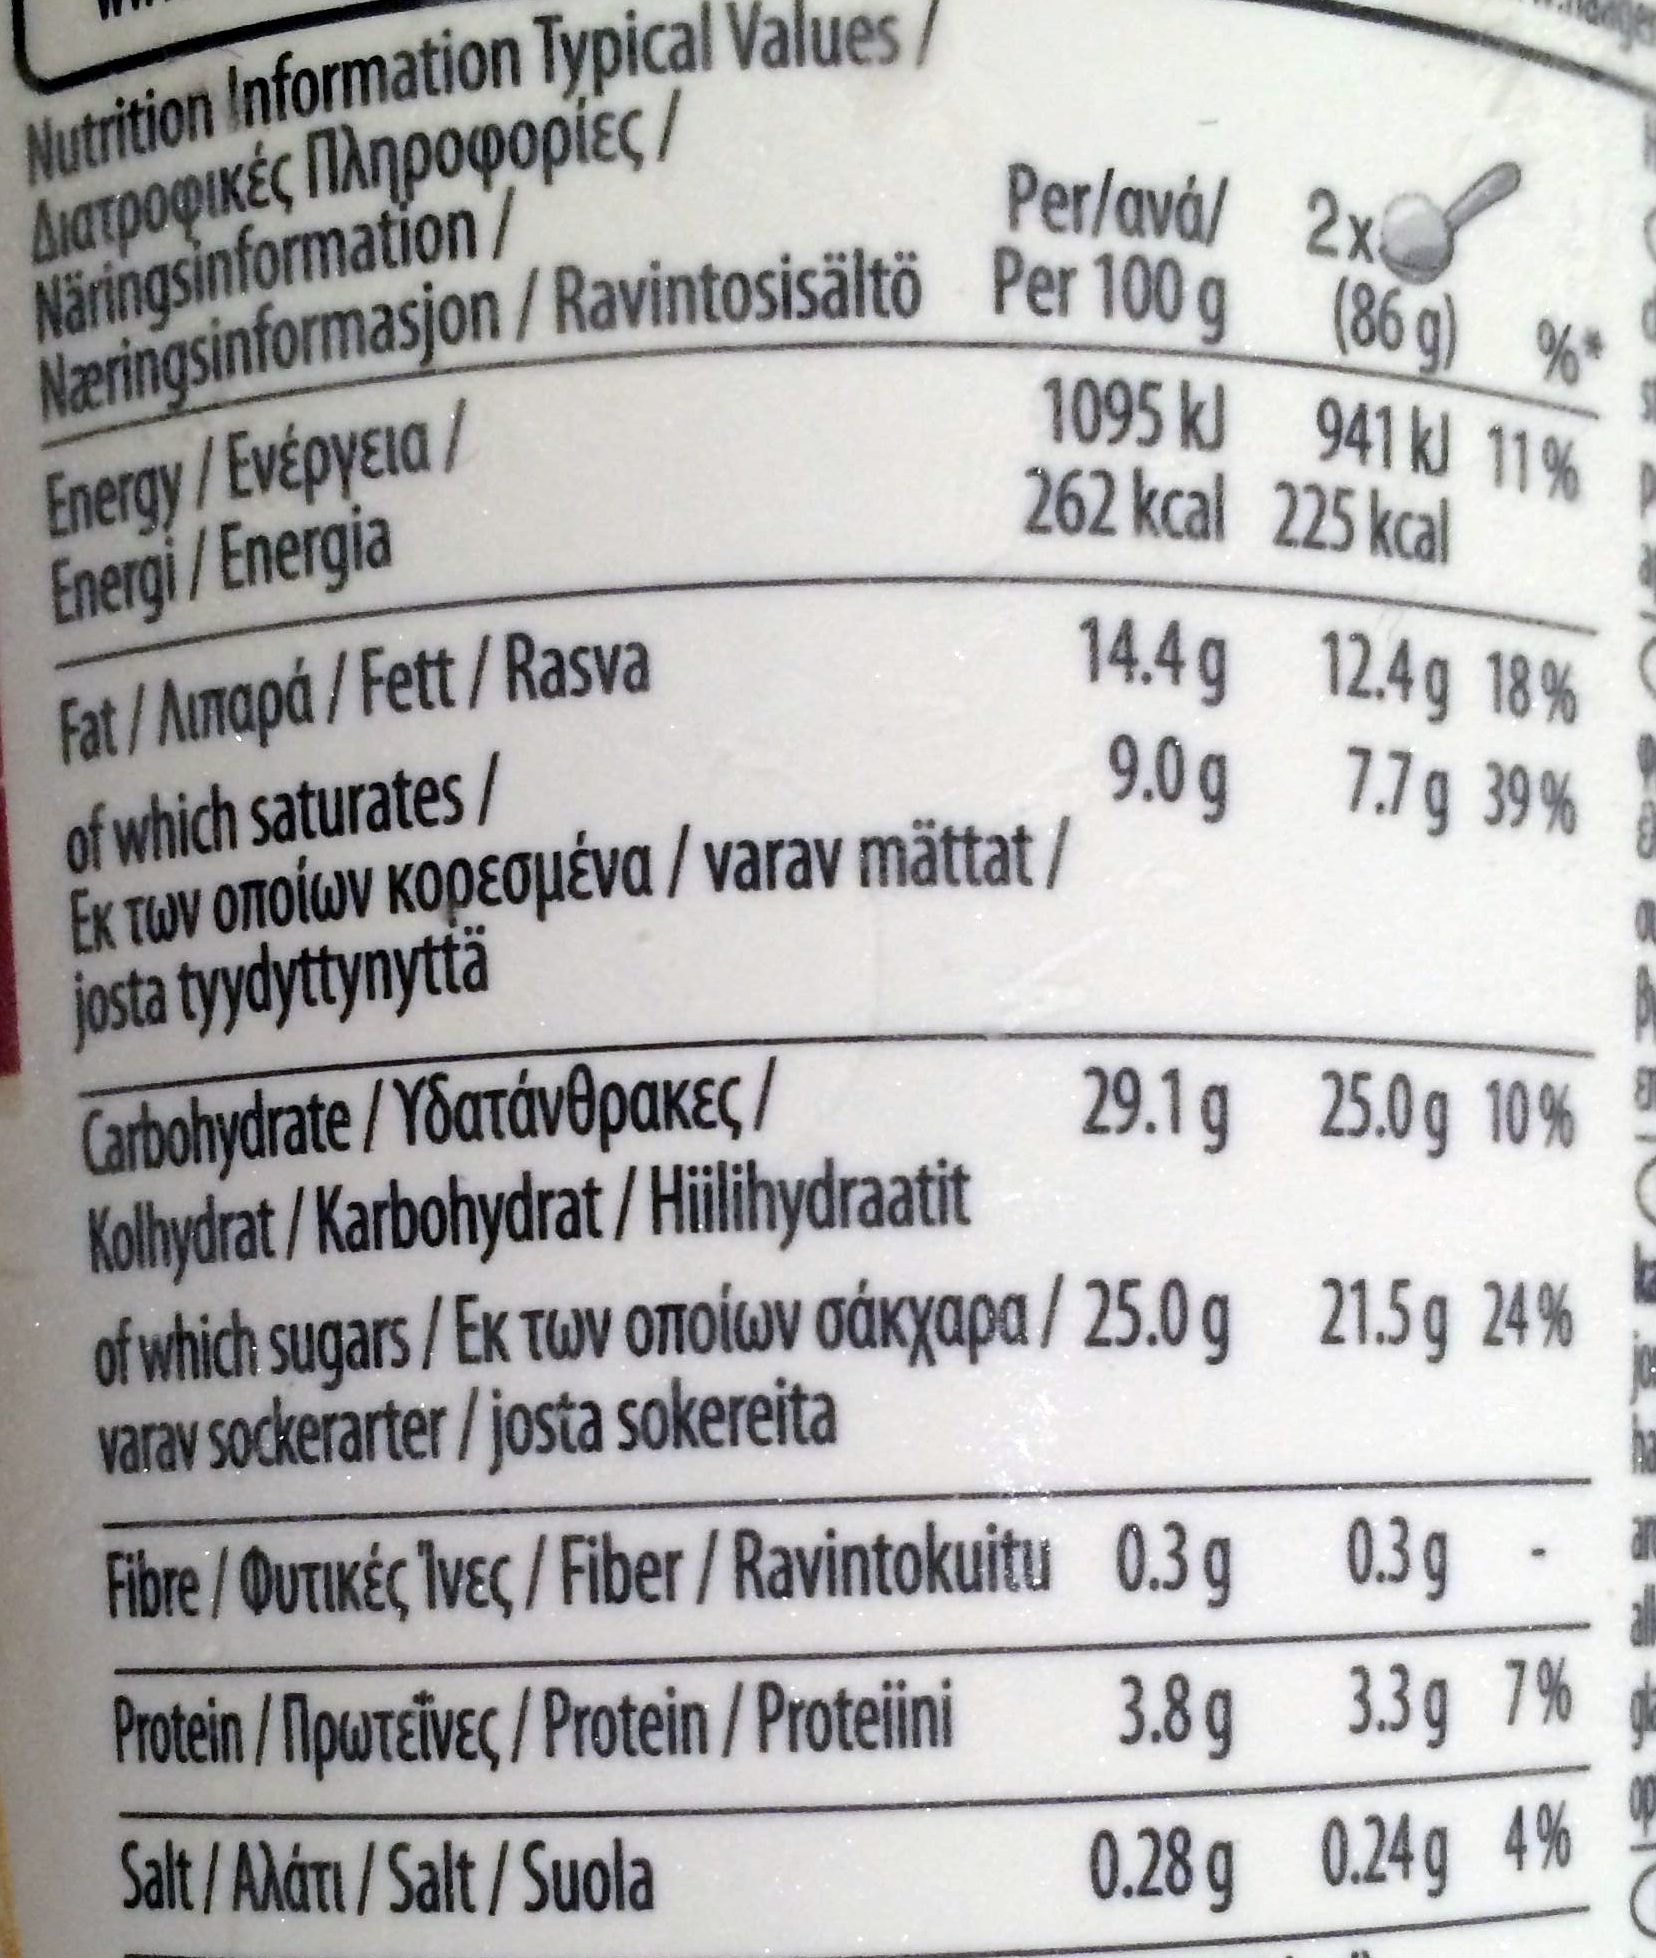 Strwaberry cheesecake - Nutrition facts - en